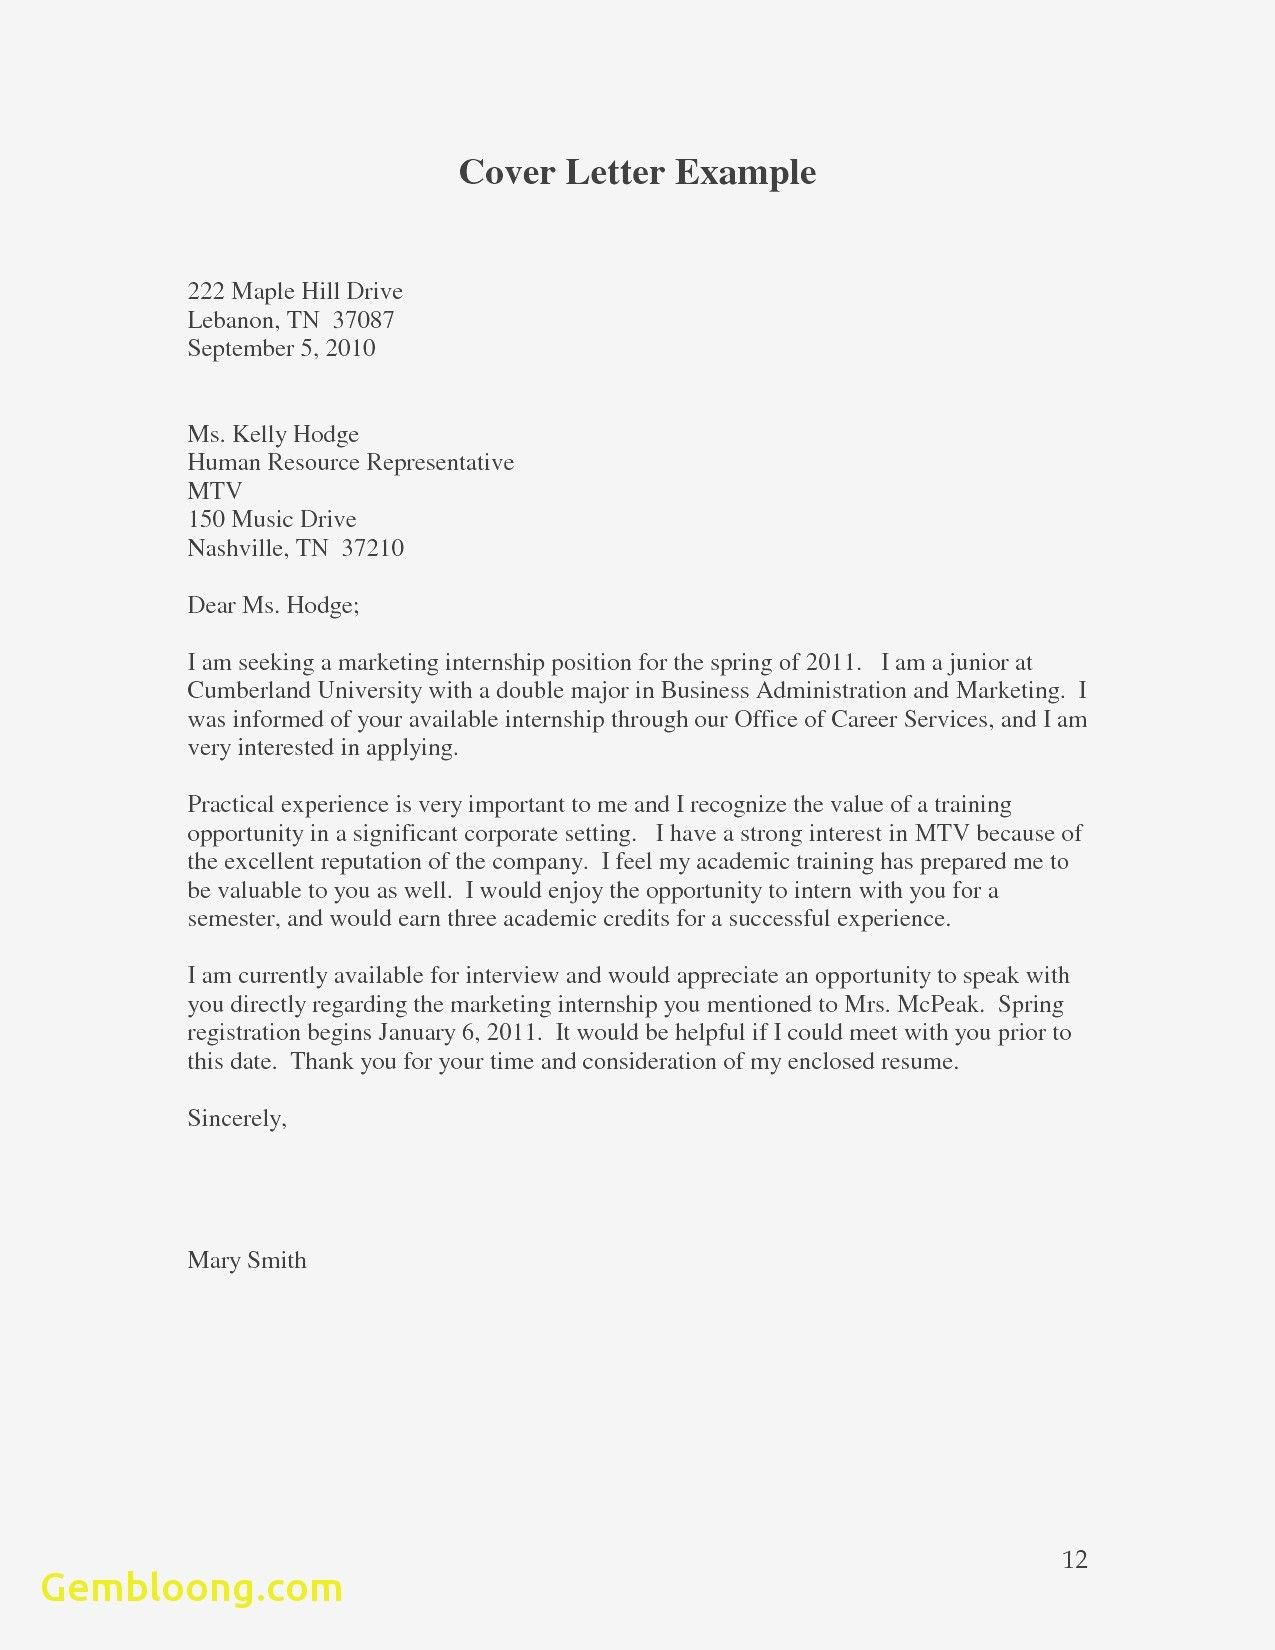 40 Letters Of Application Examples Job cover letter, Job